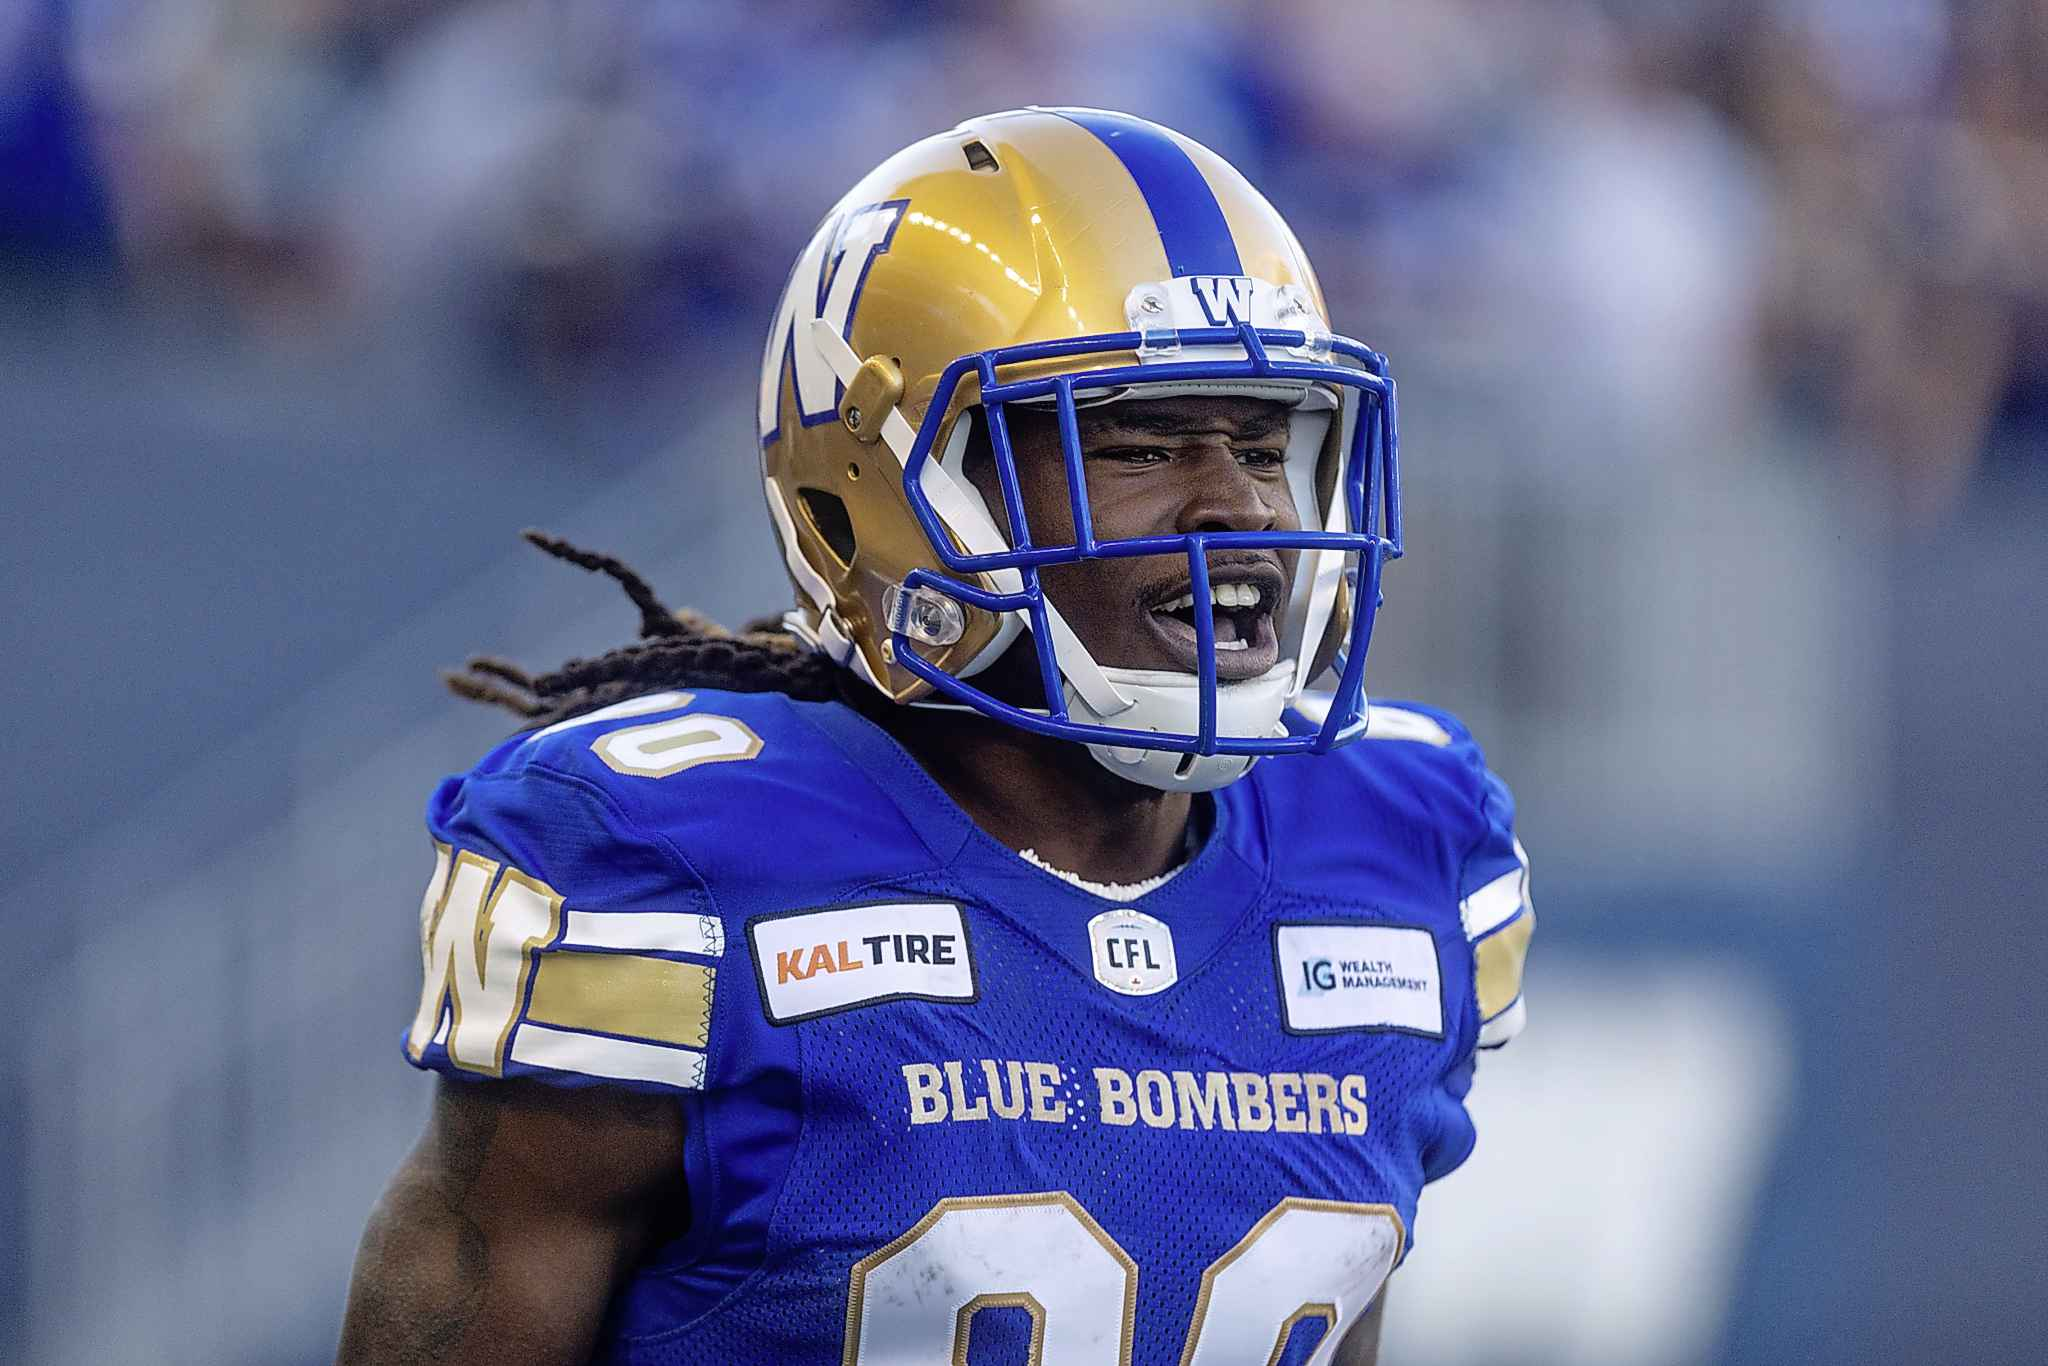 The 76-yard return was the first time Janarion Grant had touched a ball in a CFL regular-season game. (Sasha Sefter / Free Press files)